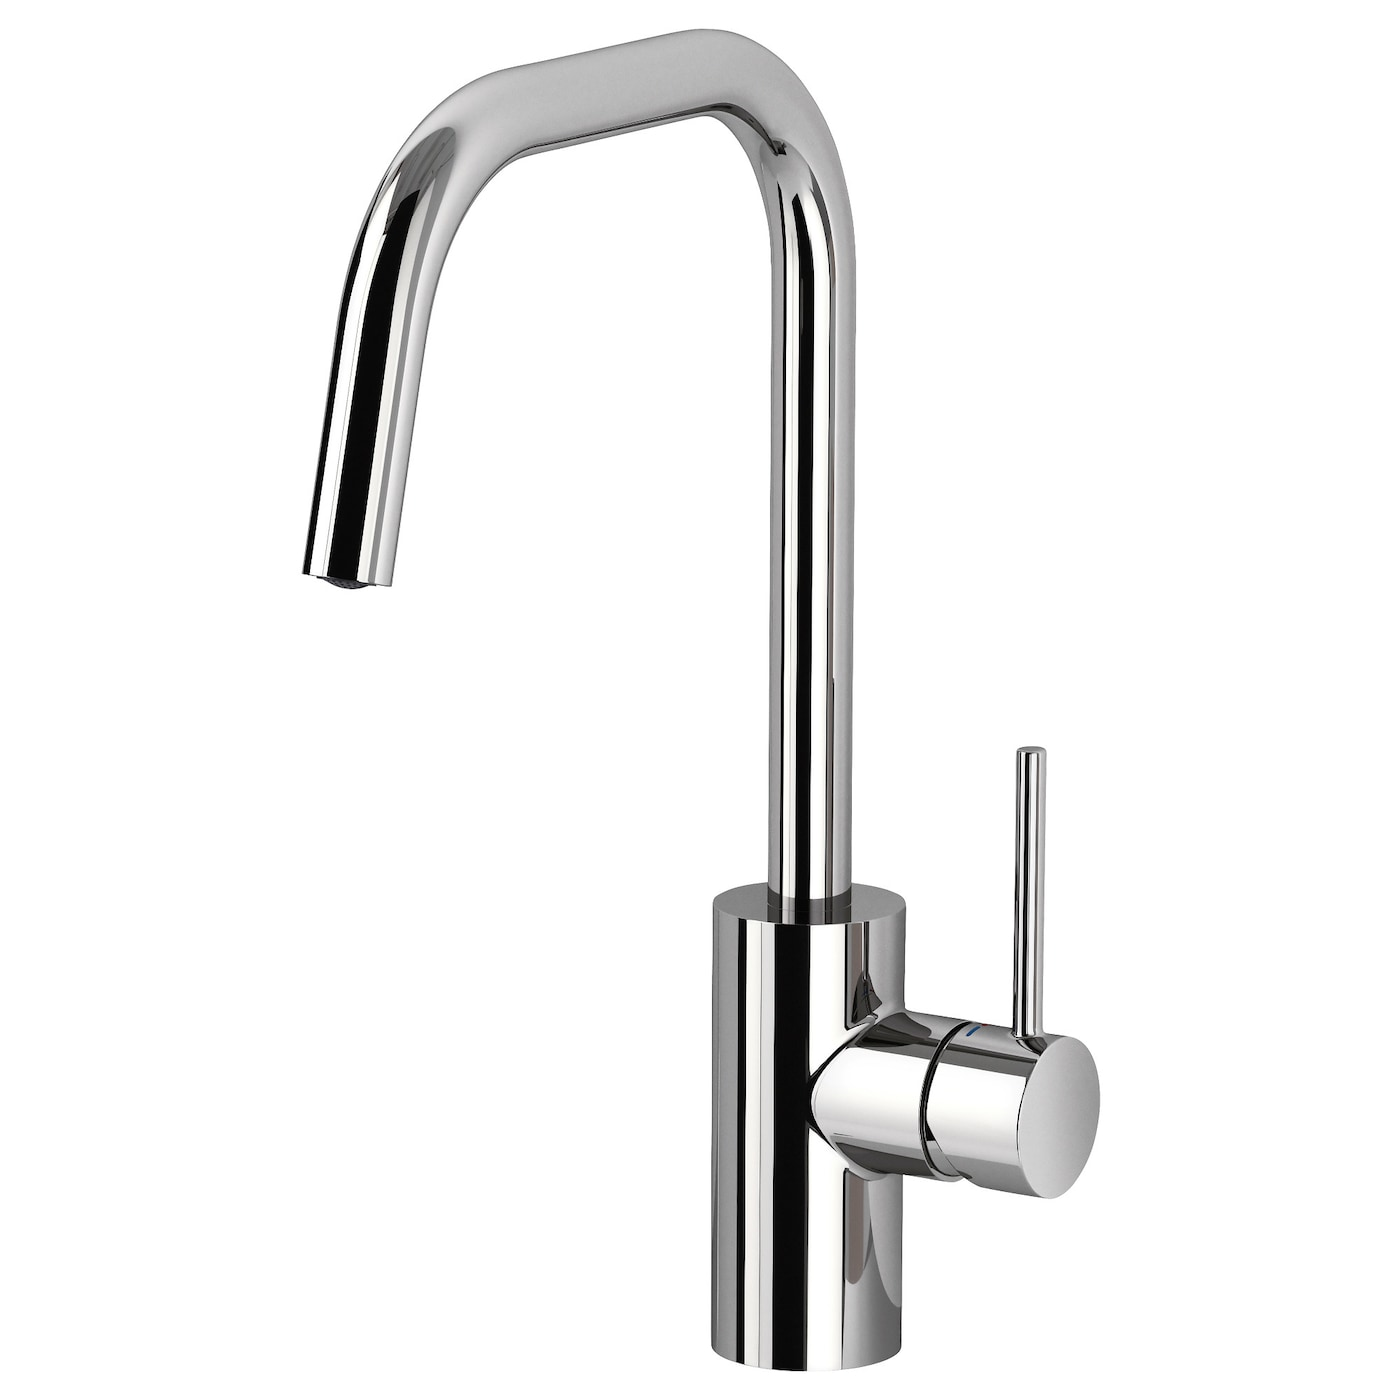 IKEA ÄLMAREN kitchen mixer tap 10 year guarantee. Read about the terms in the guarantee brochure.